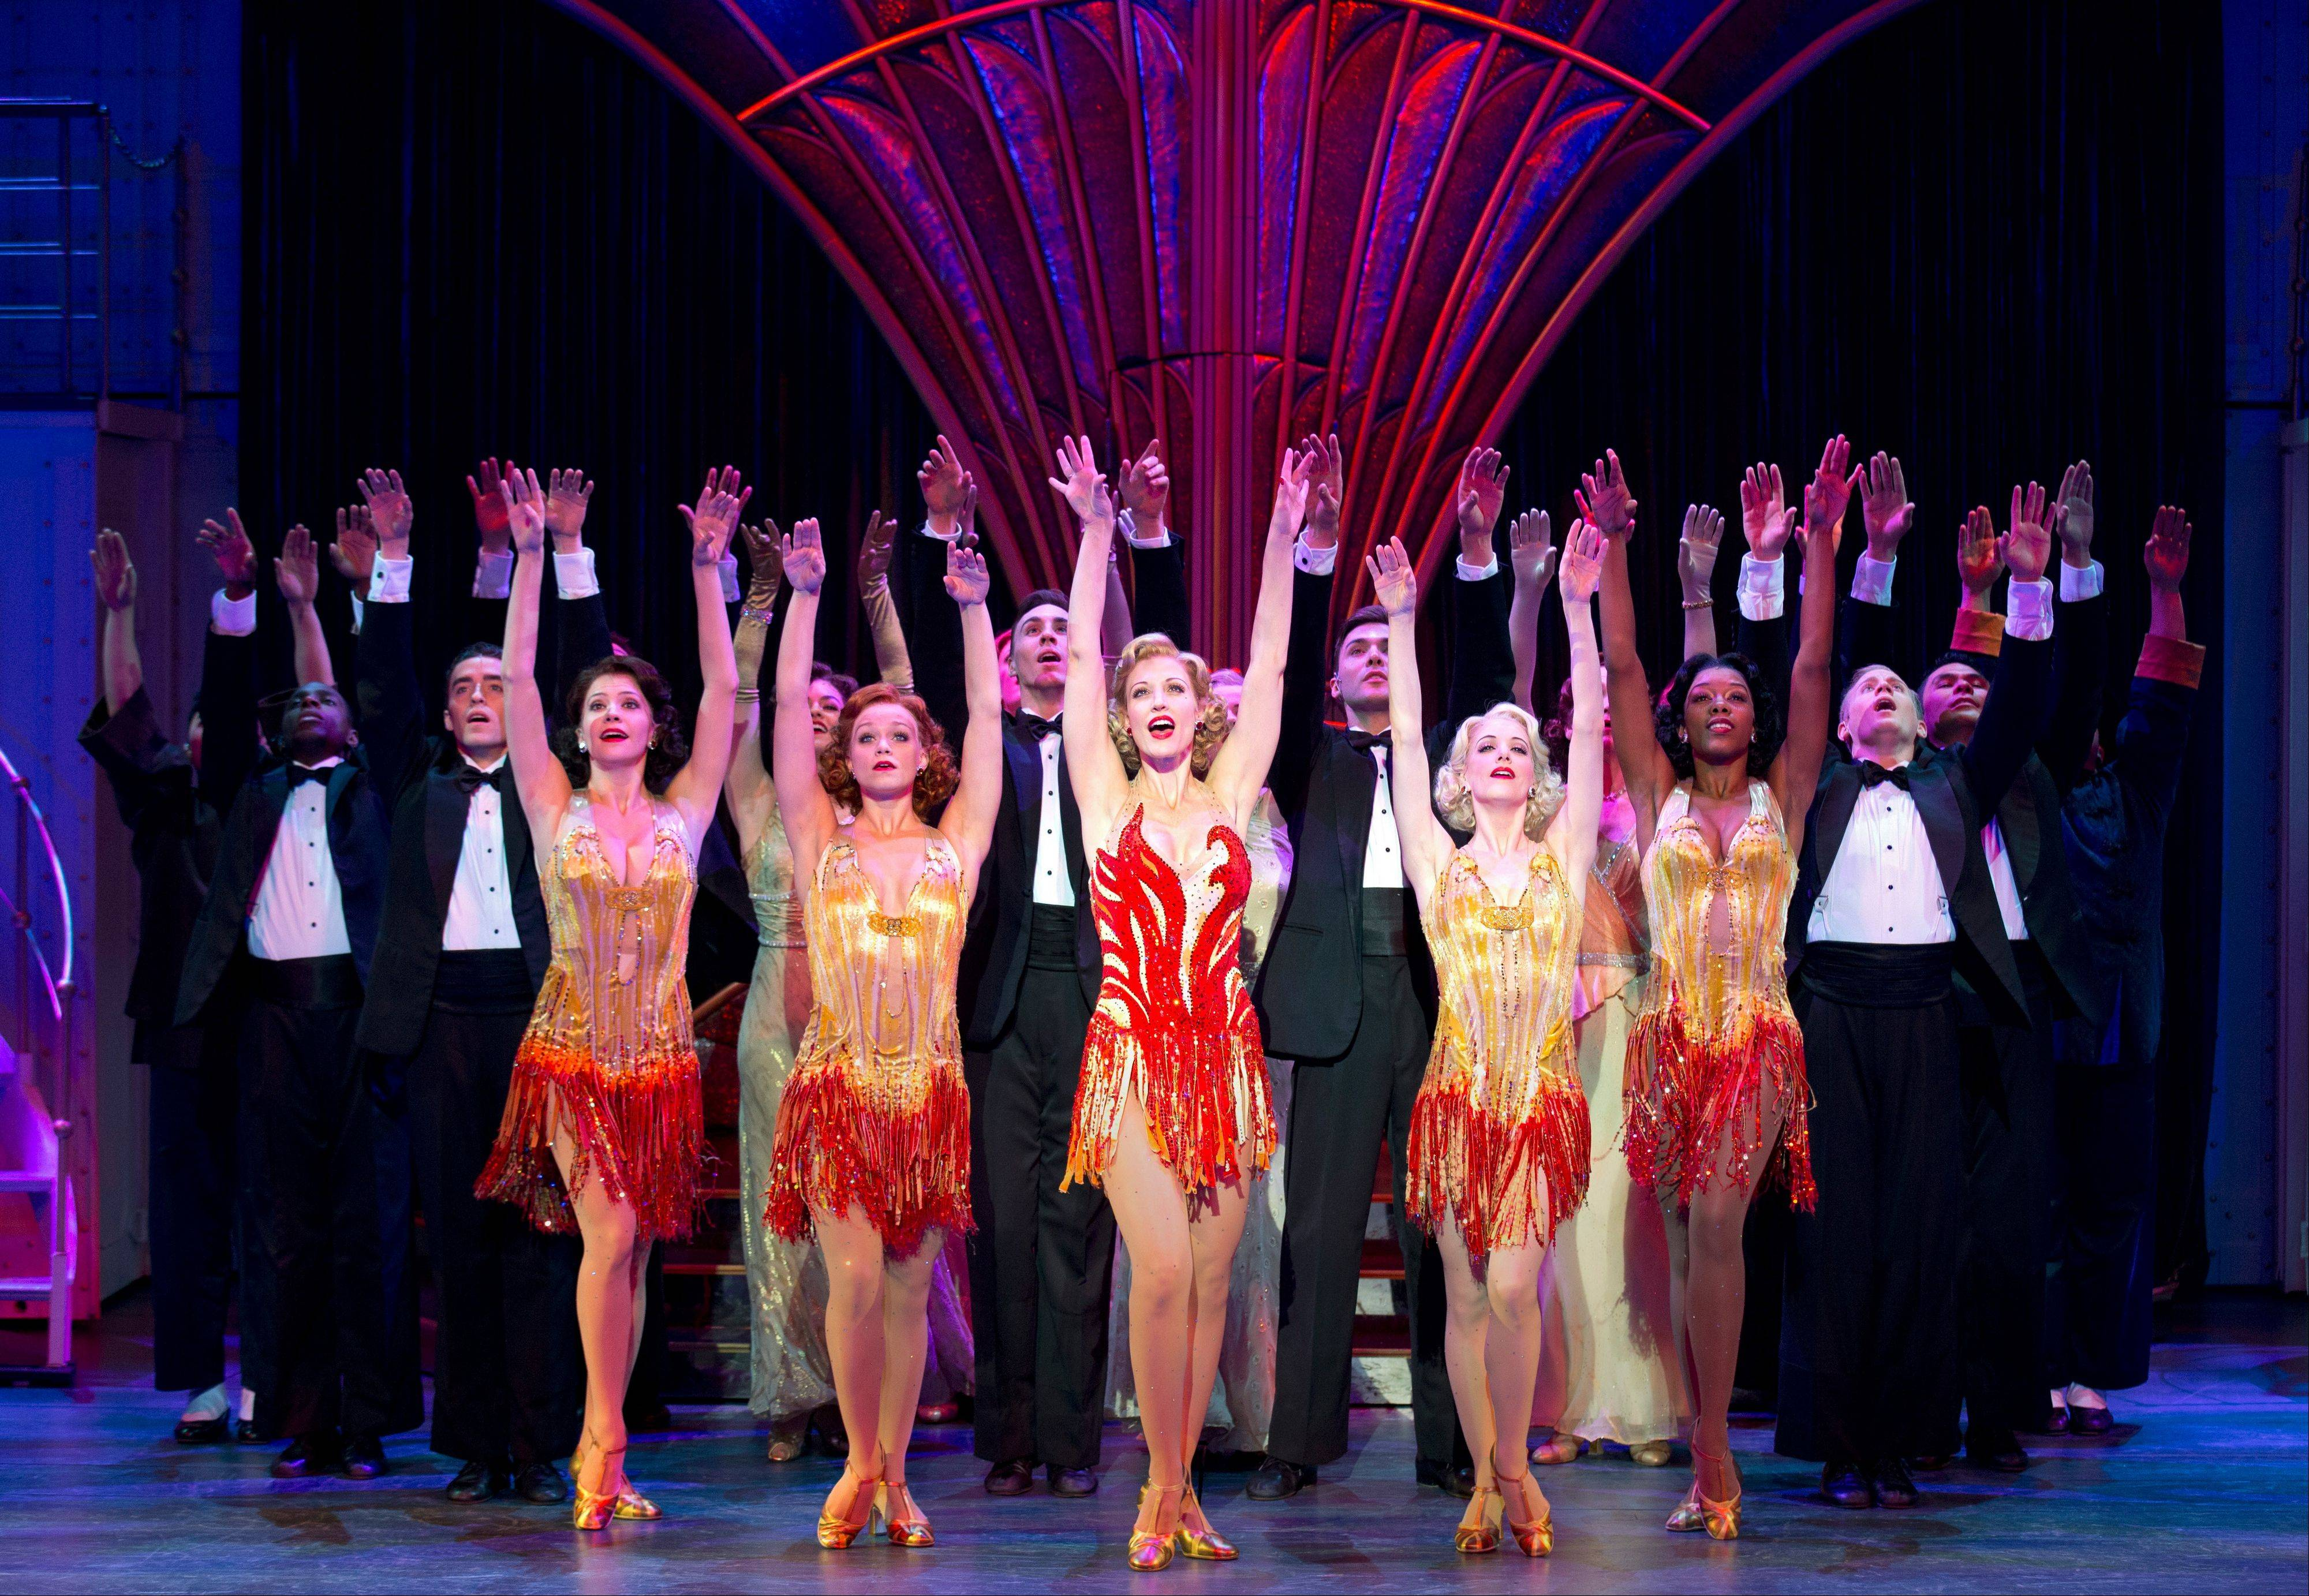 "Reno Sweeney (Rachel York) preaches her own brand of redemption in the big Act II production number ""Blow, Gabriel, Blow"" in the Roundabout Theatre Company's national tour of ""Anything Goes"" now at the Cadillac Palace Theatre in Chicago through Sunday, May 5."